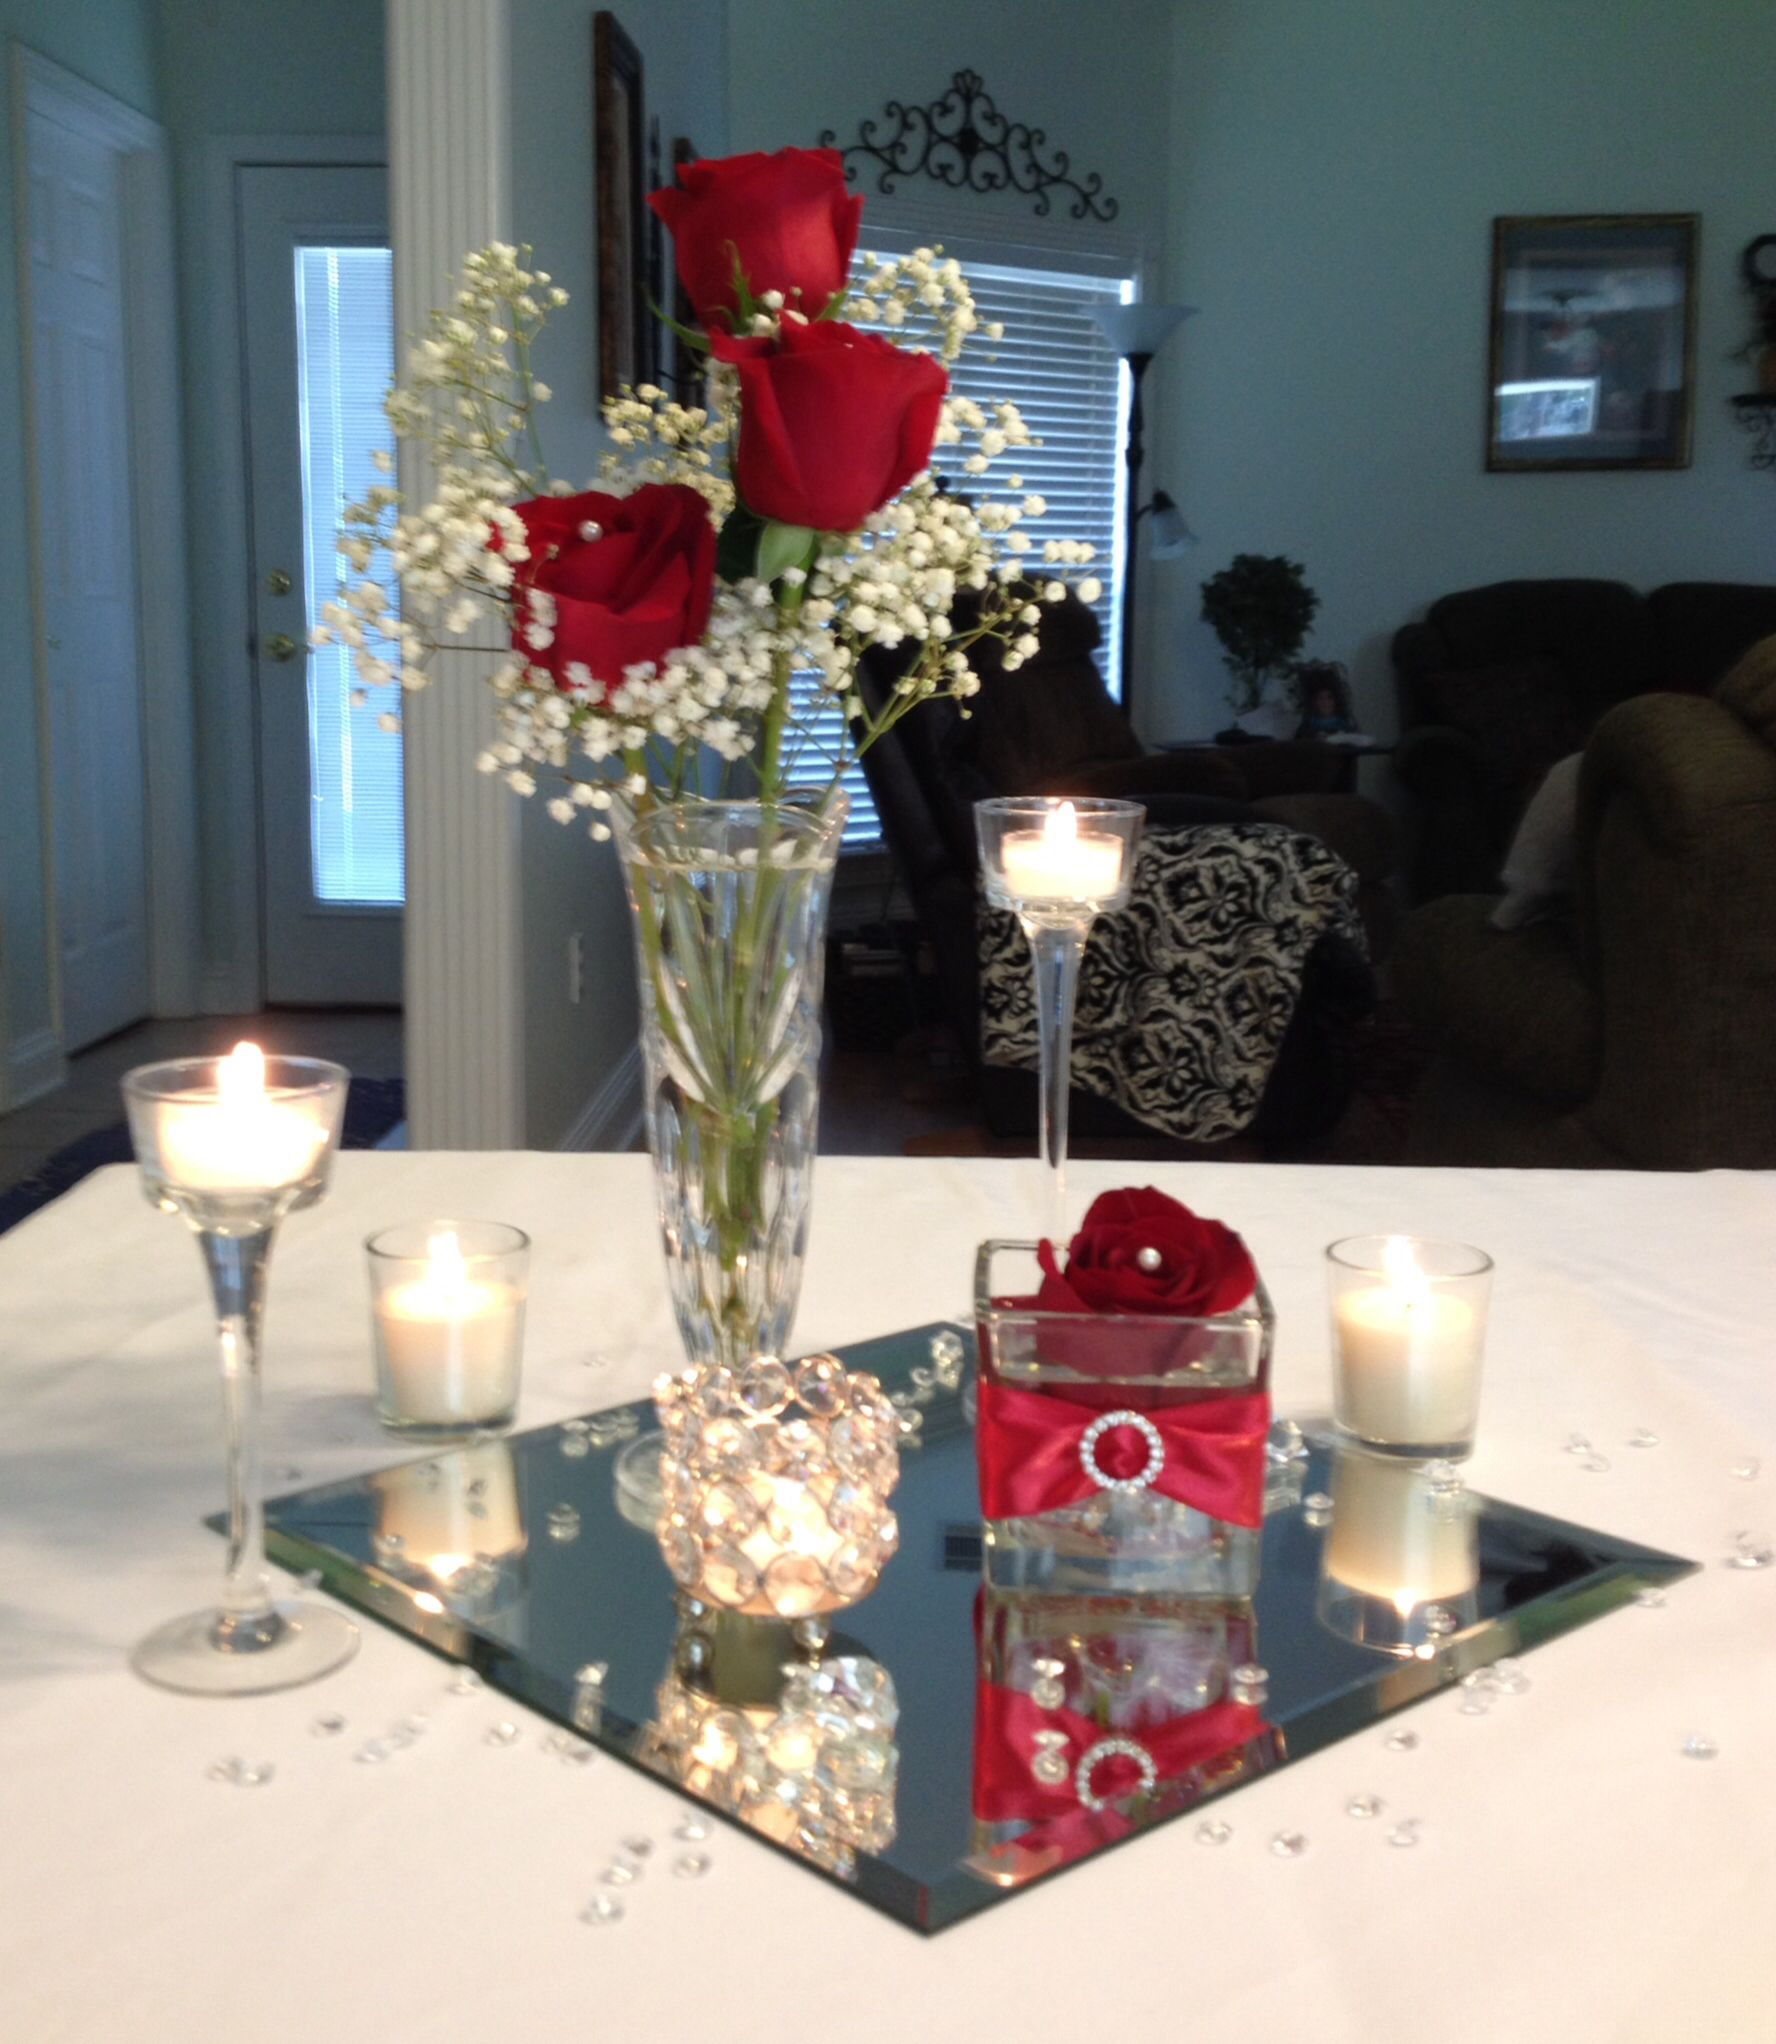 Low budget wedding centerpiece by vera one day now a for Inexpensive wedding centrepieces